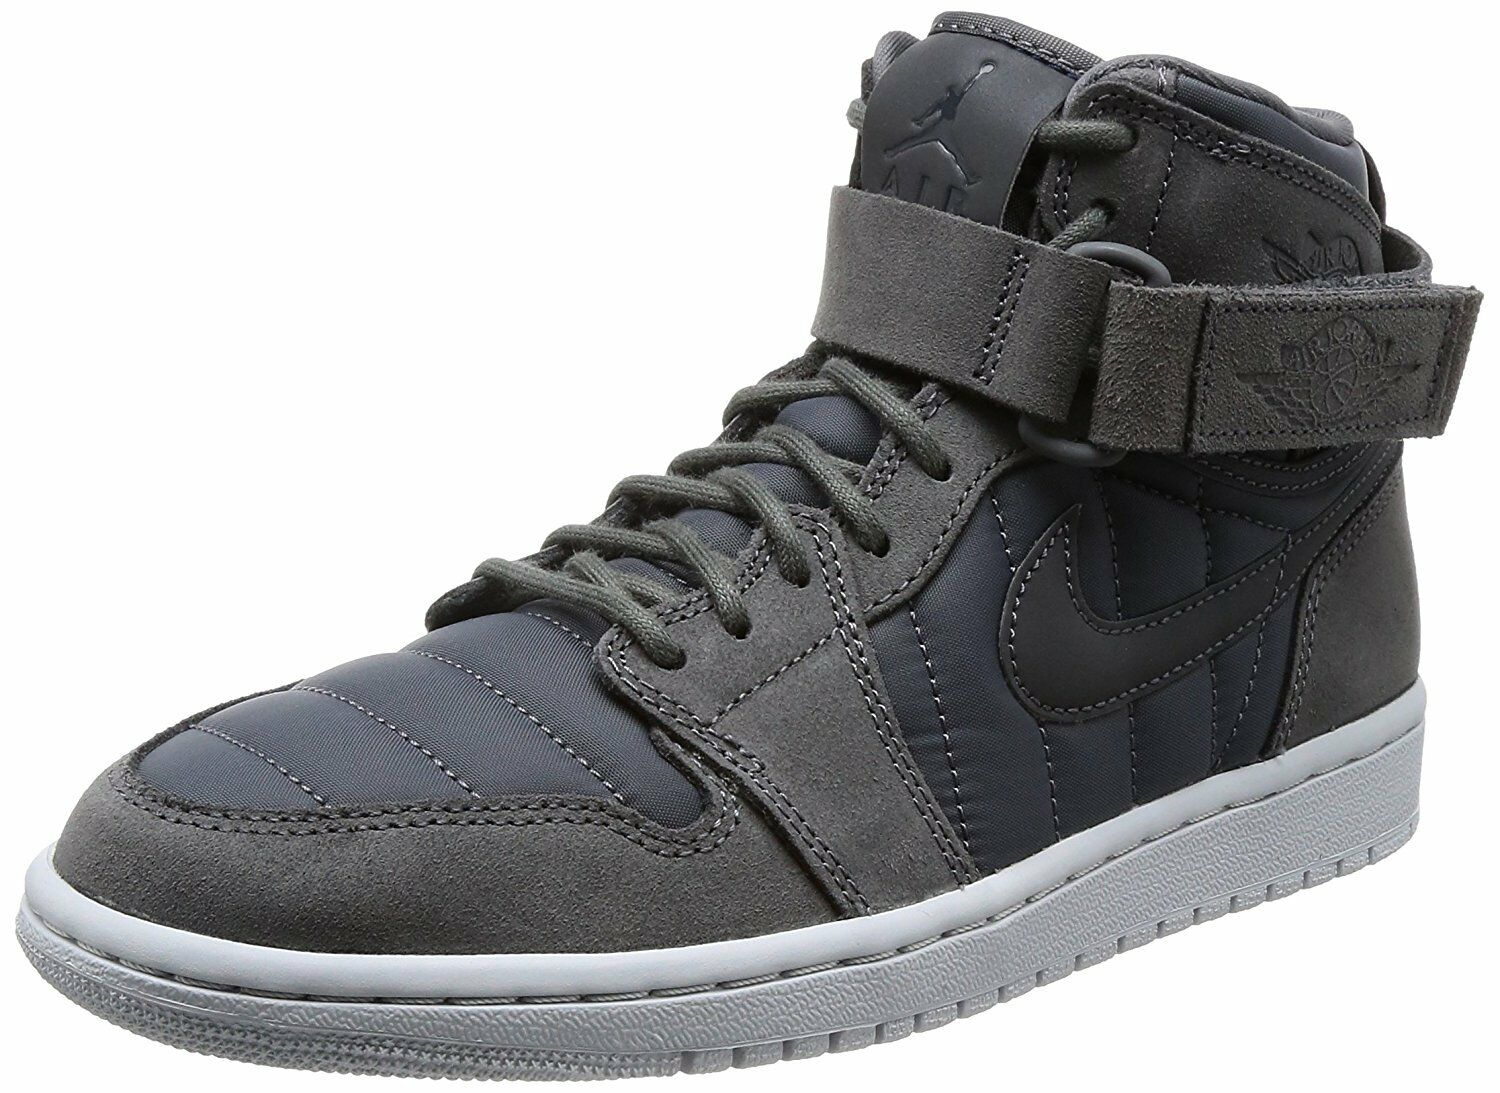 Jordan Retro 1 High Strap Dark grau Dark grau (342132 005)